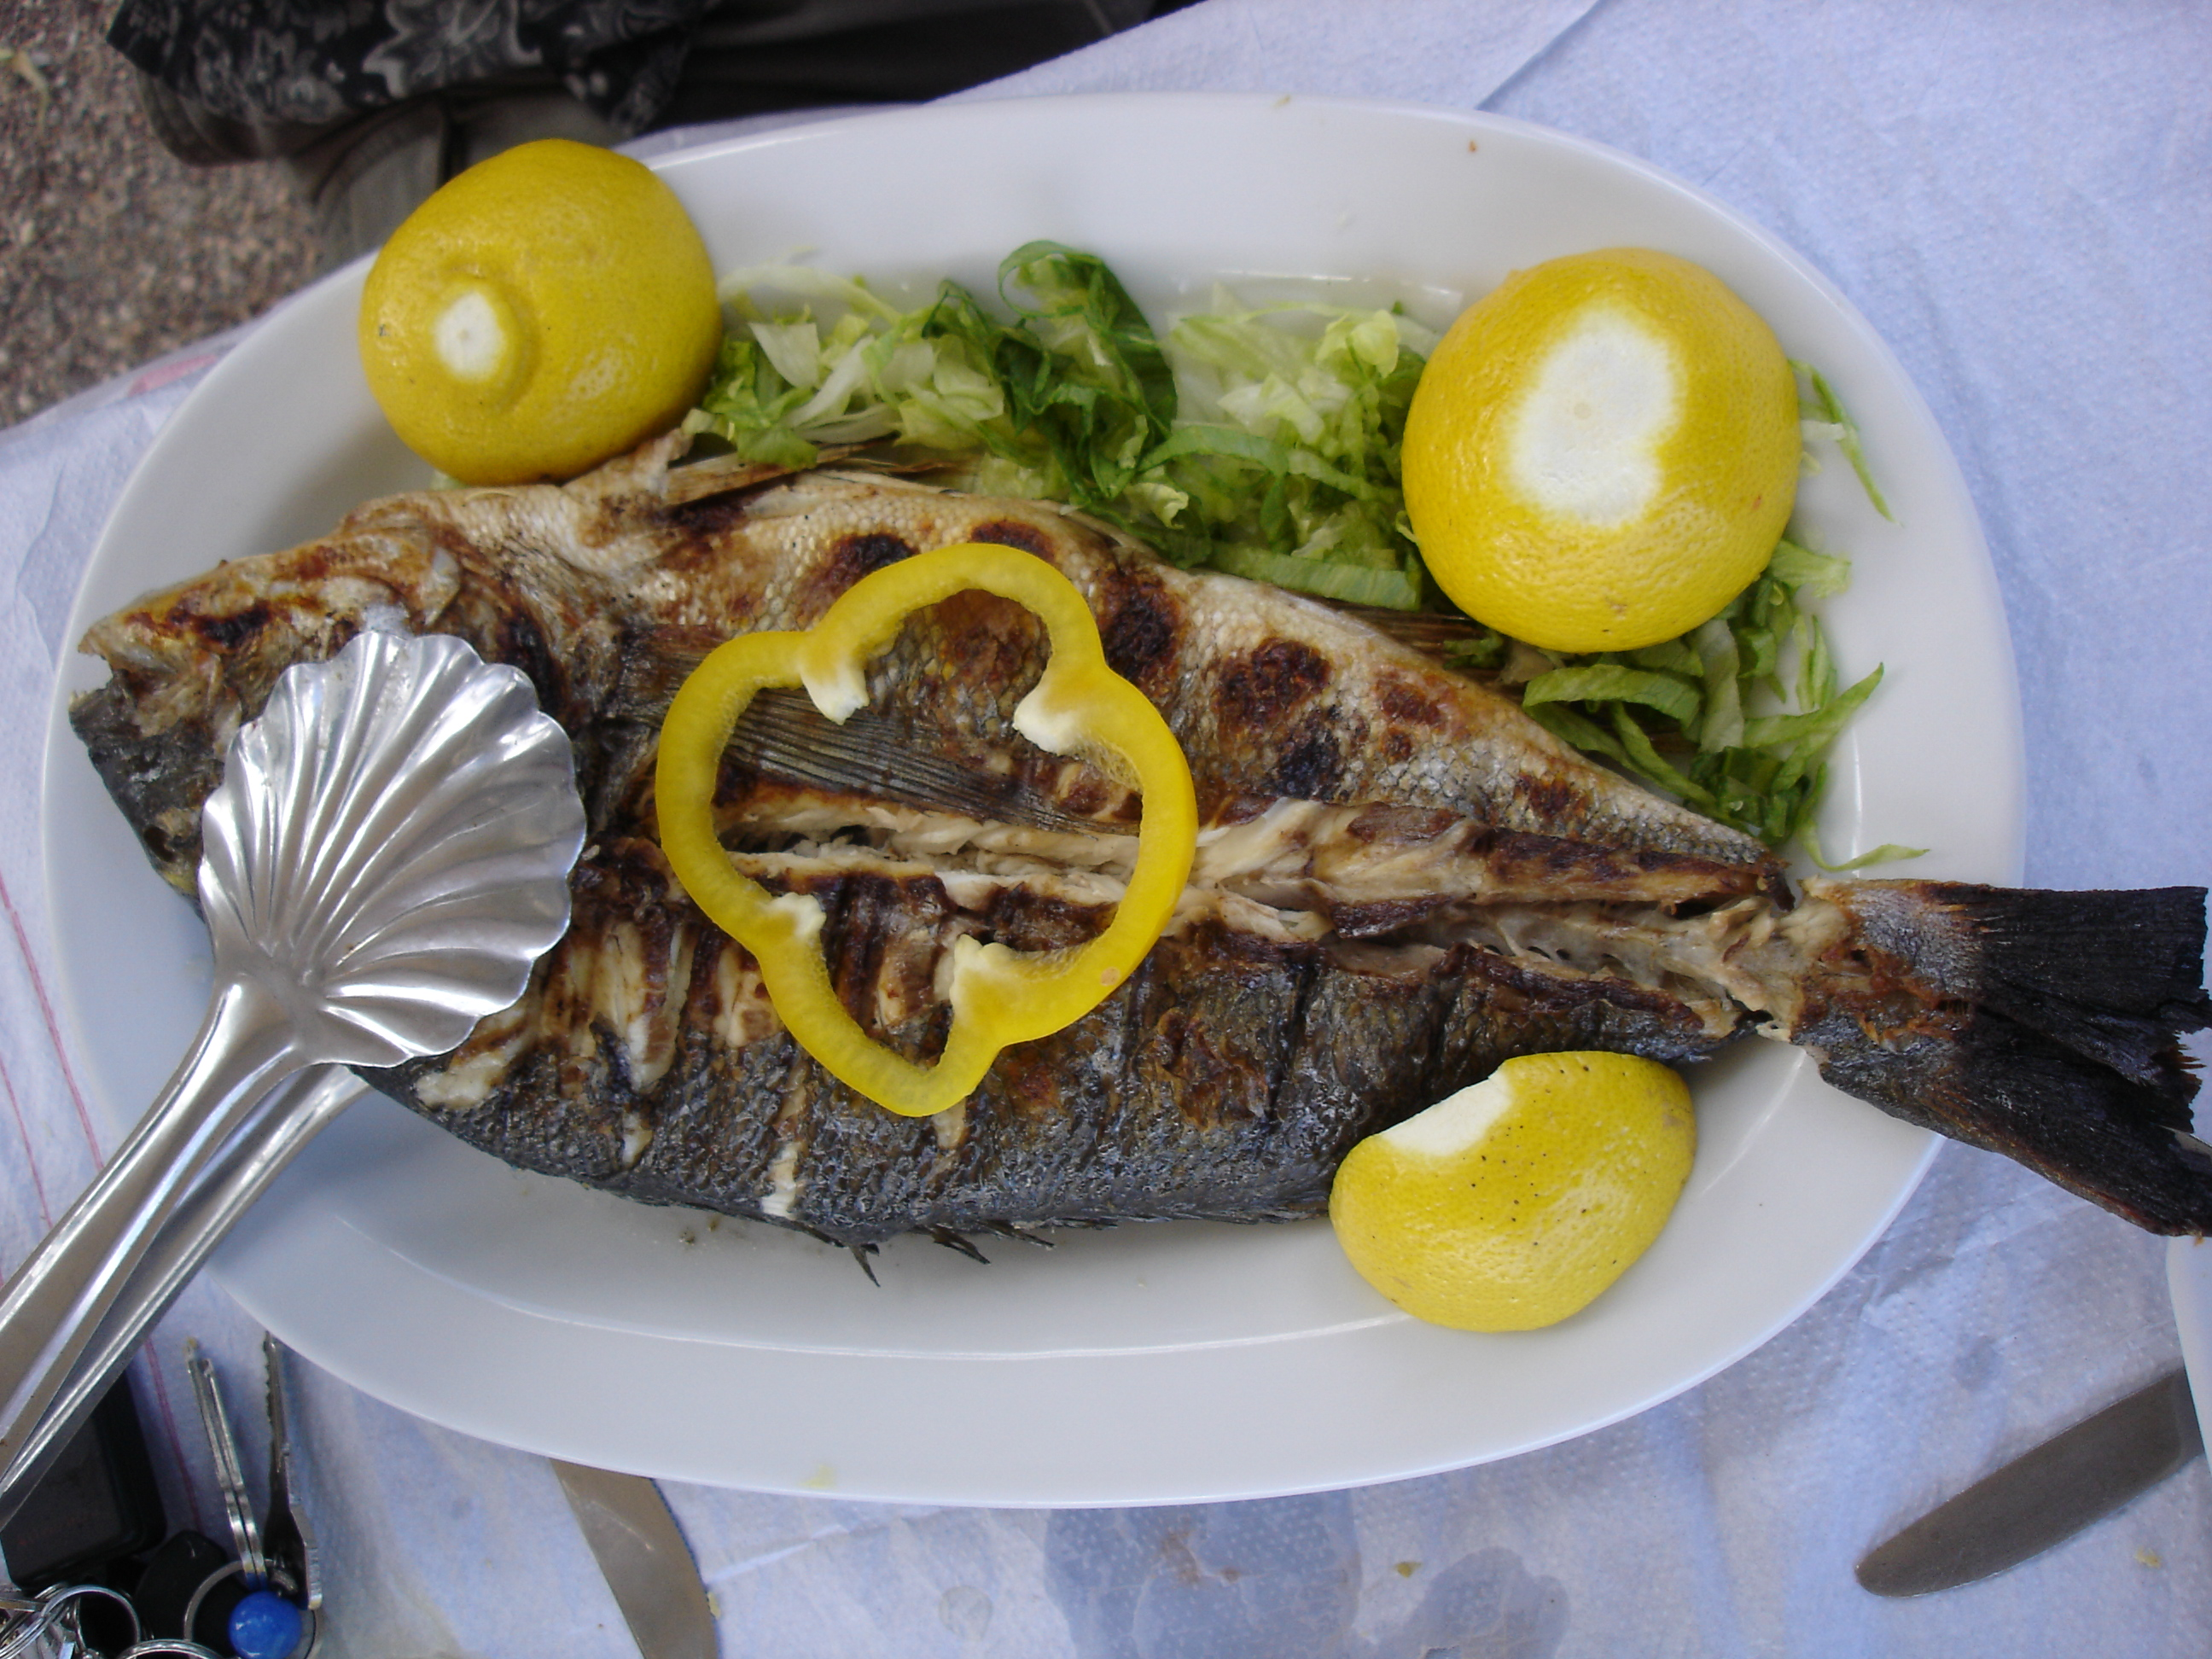 Greek food: How to clean a fish